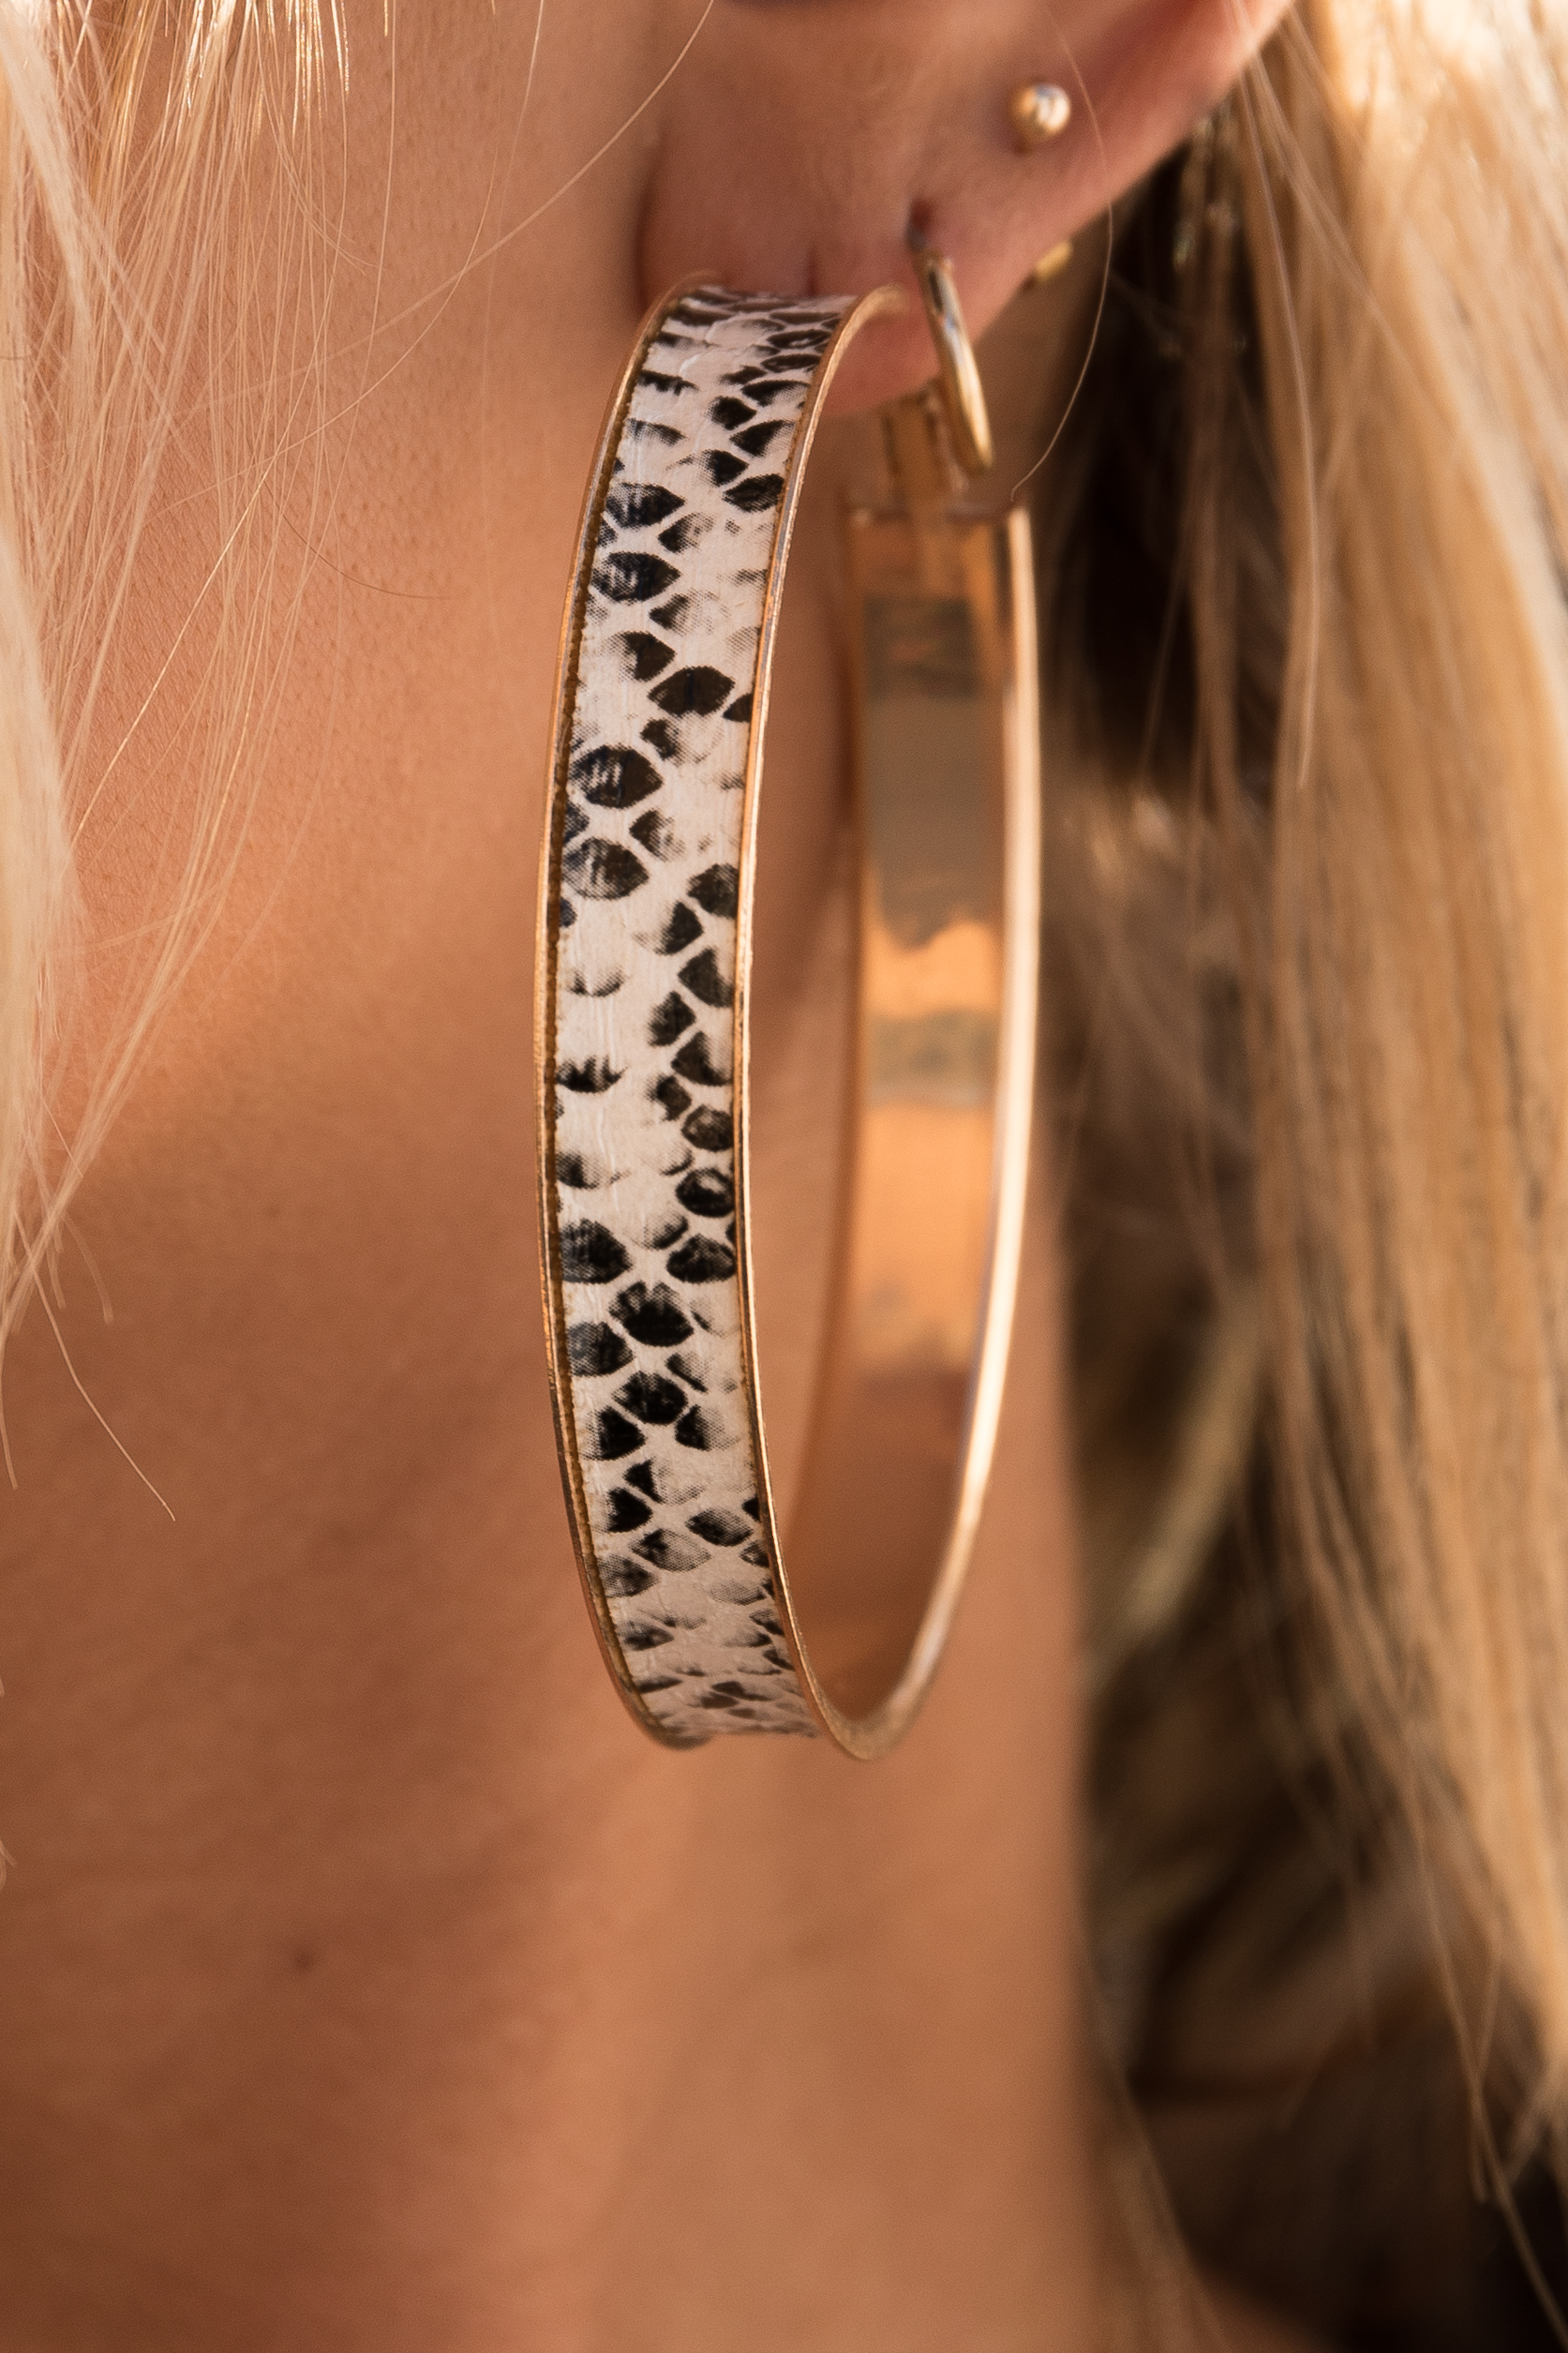 Soft Grey and Black Snake Print Hoop Earrings with Gold Trim